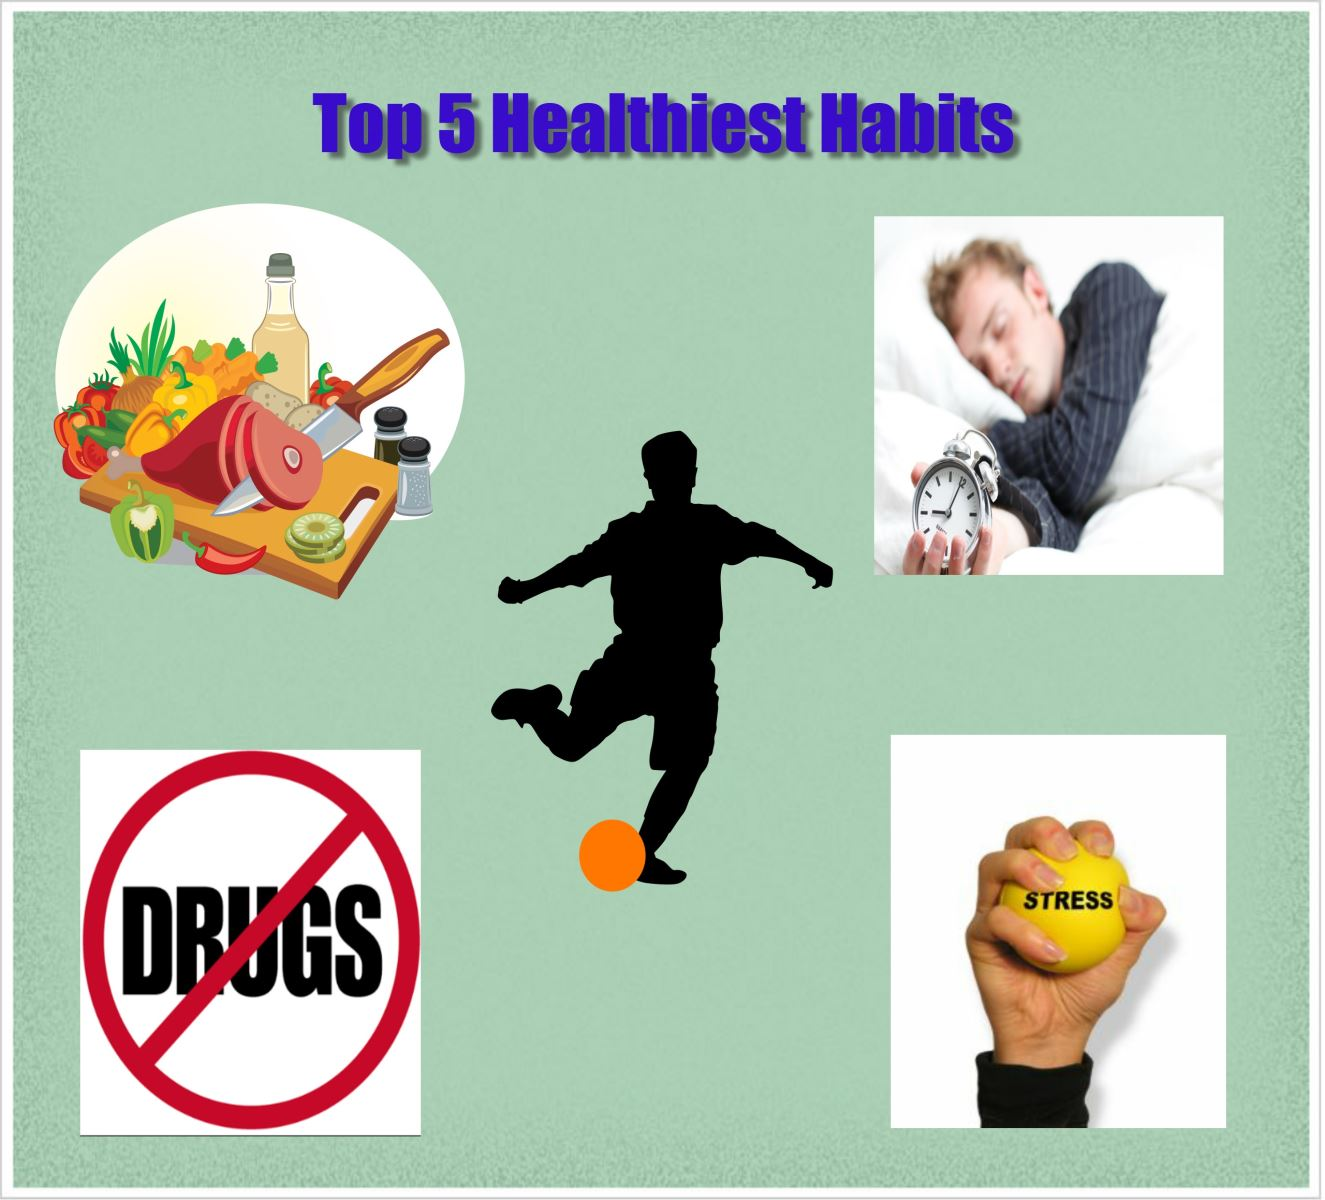 The Top Five Things the Healthiest People in the World Do 1. Exercise- but be sure to do it the fun way.  More and more research is showing us that moderation in all things means in exercise too.  If you are not already active consider following these guidelines: •	Find at least two things that you like to do. If you like to walk, swim, bike, play basketball, do yoga, aerobic DVDs, lift weights, dance by yourself while listening to your IPod , it's all great. •	Rotate between the two or three activities you choose.  This creates cross-training so you get fit faster, and keeps you from getting bored with exercise. •	Take the number 180 and minus your age. This is your new maximum heart rate. (We told you this is new stuff.) Now train so that your heart rate while exercising is from there to 10 beats below that number. This builds a solid cardiovascular foundation and you will get fit without feeling too fatigued or tired.  NO PAIN, you can go longer, and you still get those awesome endorphins! 2. Eat right - A calorie is not a calorie, so counting calories is not always the best way to go. It is far better to choose foods that FILL YOU UP.  If you eat foods that are easily digested, (breads, most cereals, juices, crackers, and treats) you will get hungry sooner, you will eat more food, and you put yourself at risk for diabetes, obesity, cancer, stroke, and heart disease. Instead choose healthy foods that are harder to digest and make you feel fuller longer.  •	Eat more protein and healthy fat foods. YES eat healthy fat! People who eat healthy fat and protein, especially for breakfast eat fewer calories during the day weigh less.  •	Other foods that are full of phytochemicals, antioxidants, fiber, protein and healthy fats are:  o	nuts (almonds, walnuts, cashews, pecans, pistachio).  o	beans (black, kidney, pinto, garbanzo).  o	100% whole grain products (if it doesn't say 100% whole grain – it isn't). Don't be fooled when it says 4 grams of whole grain per serving.  That's pathetic, really. o	10-11 Veggies and fruits per day – WE NEED THESE! There are over 80,000 good chemicals in these foods that help your immune system. You can't replace that with a vitamin pill.  3. Get Enough Sleep – People who do not get enough sleep weigh more, remember less, and are as dangerous as drunk drivers on the roads. People who don't get enough sleep are also more likely to get sick, stay sick, exercise less, eat worse, and yell at their kids.  Need we say more?  4. Manage Your Stress –When the stress response is turned on for short periods, you can escape danger. When it is turned on chronically, your health is in danger. Train your mind to think differently. You have handled hard things before, you can handle this. Also, take time each day to relax so that your body/mind/spirit can get in balance again. Read, exercise, go for a walk, watch something funny, breathe, write in your journal, do a relaxation exercise, meditate, or sit in the grass and look at the beautiful mountains. 5. Don't take any drugs that you do not need. Utah is fourth in the nation for non-medical use of prescription pain relievers. Prescription drug overdose is now the number one cause of injury death in Utah.  Some estimate that 55,000 Utahans may be addicted to prescription drugs, which eclipses those addicted to illegal drugs. Also, watch loved ones to see if they are self-medicating with other recreational drugs like caffeine or with food, technology, gaming, working too much, shopping, or even exercise.